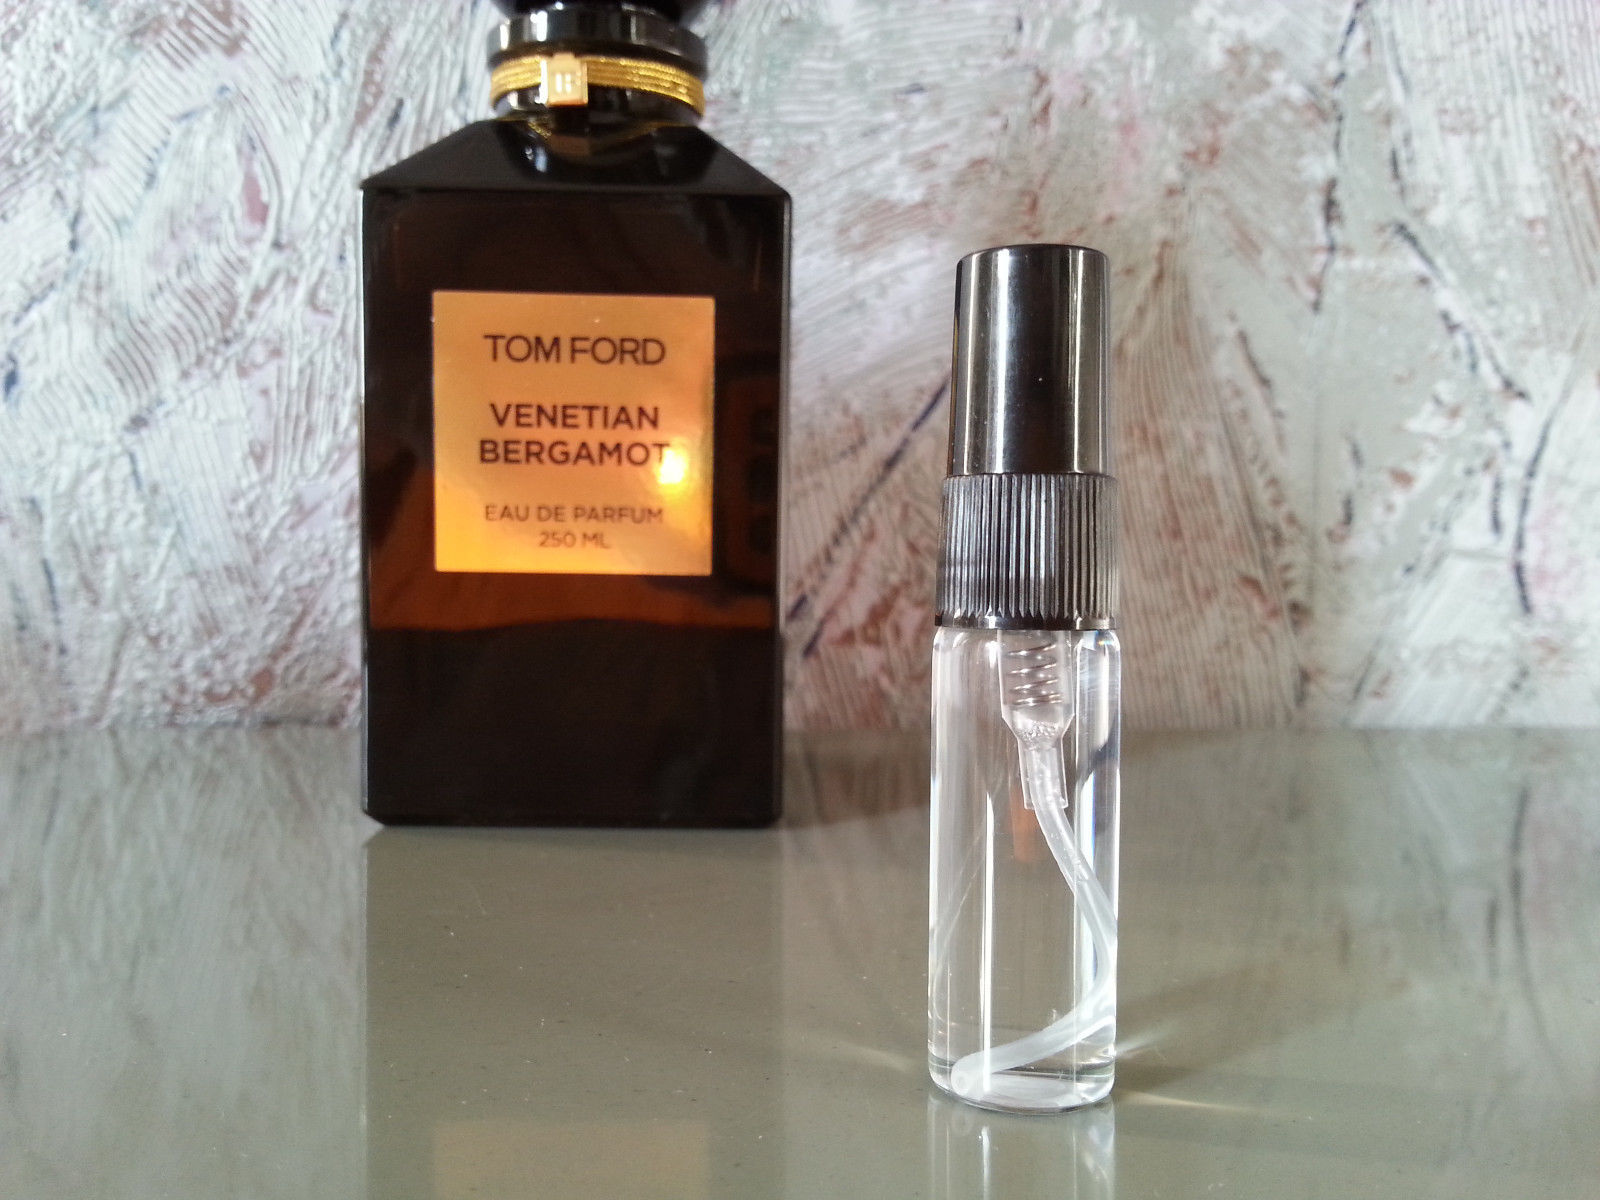 Tom Ford Venetian Bergamot Niche Perfume And 19 Similar Items Bond No9 The Scent Of Peace For Her Edp 100ml Original Free Vial S L1600